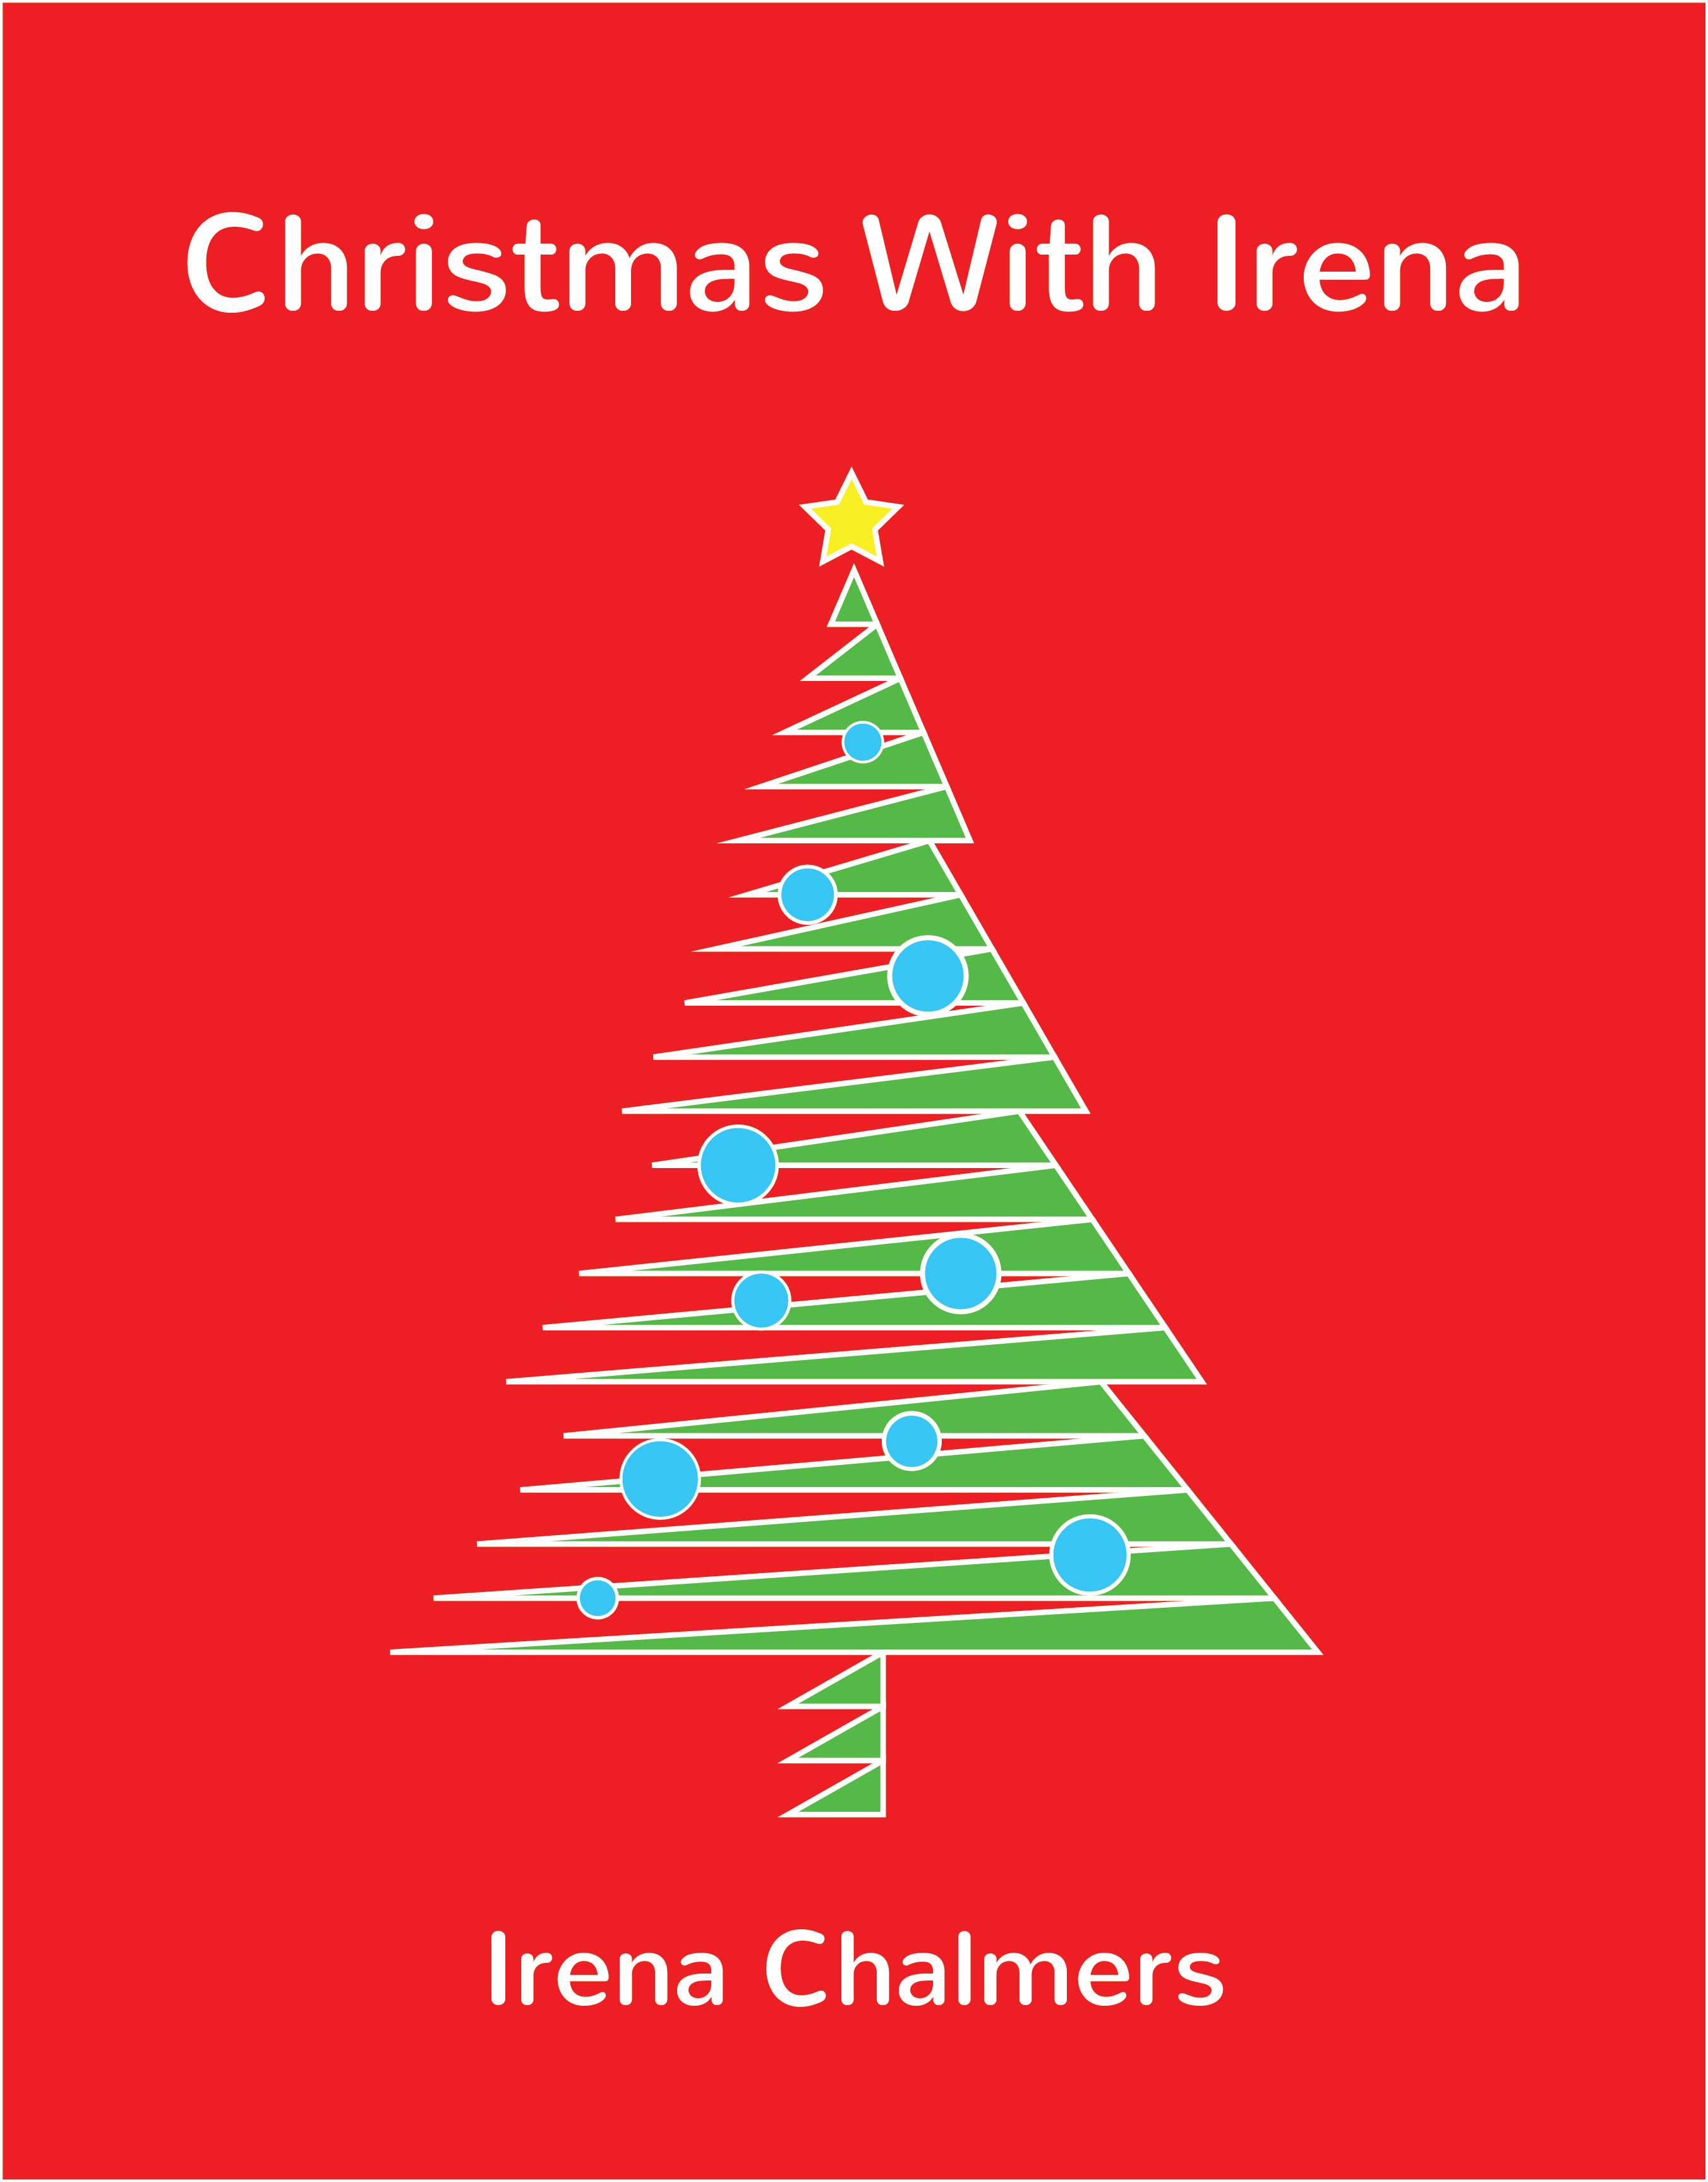 Christmas with Irena